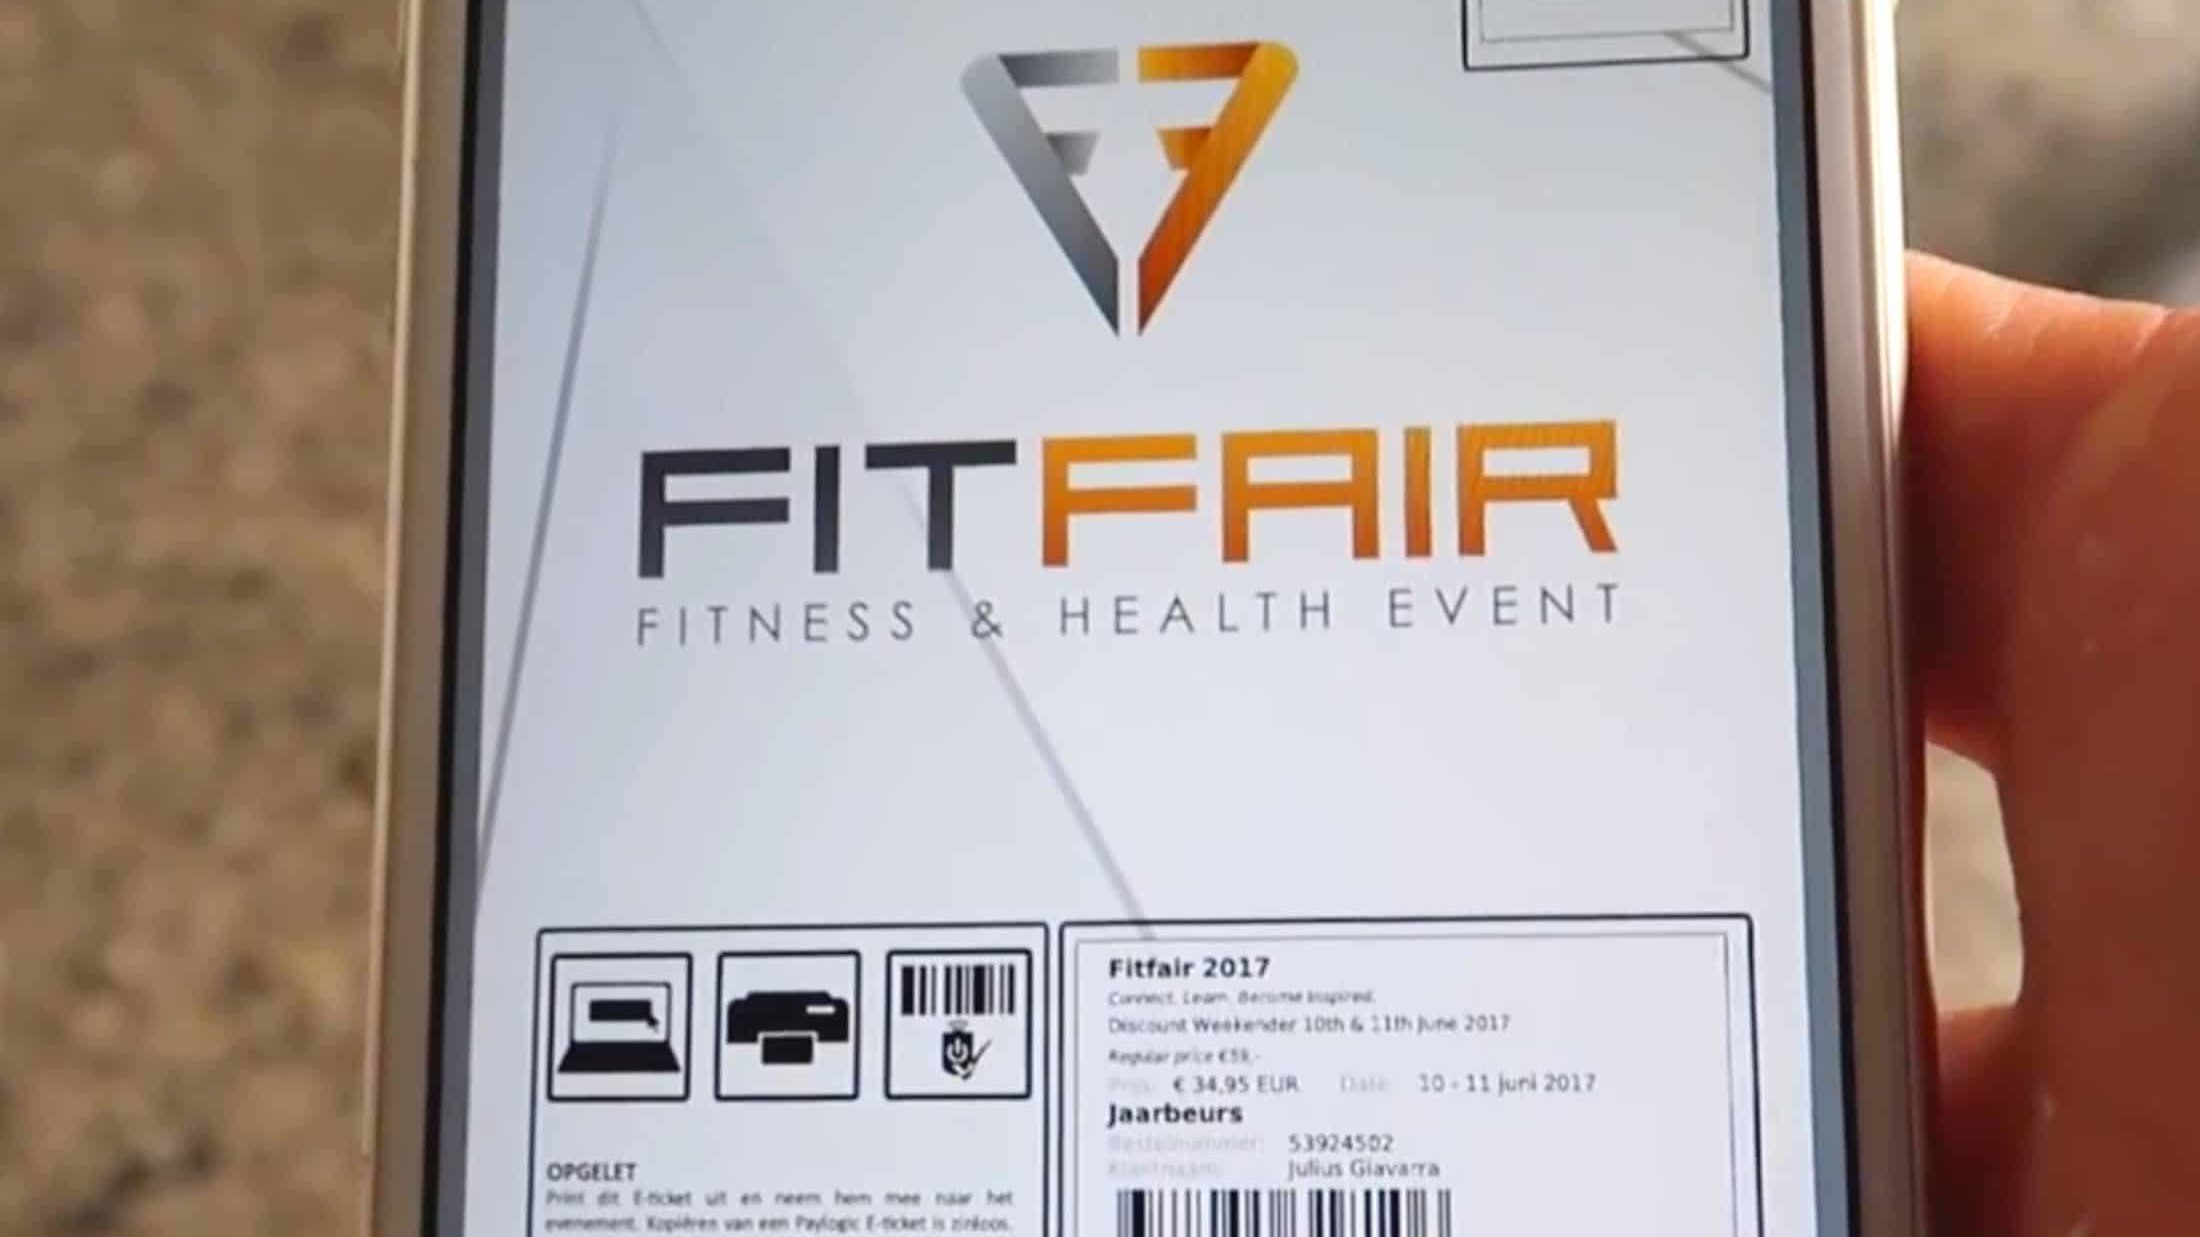 Ticket Fitfair Jaarbeurs